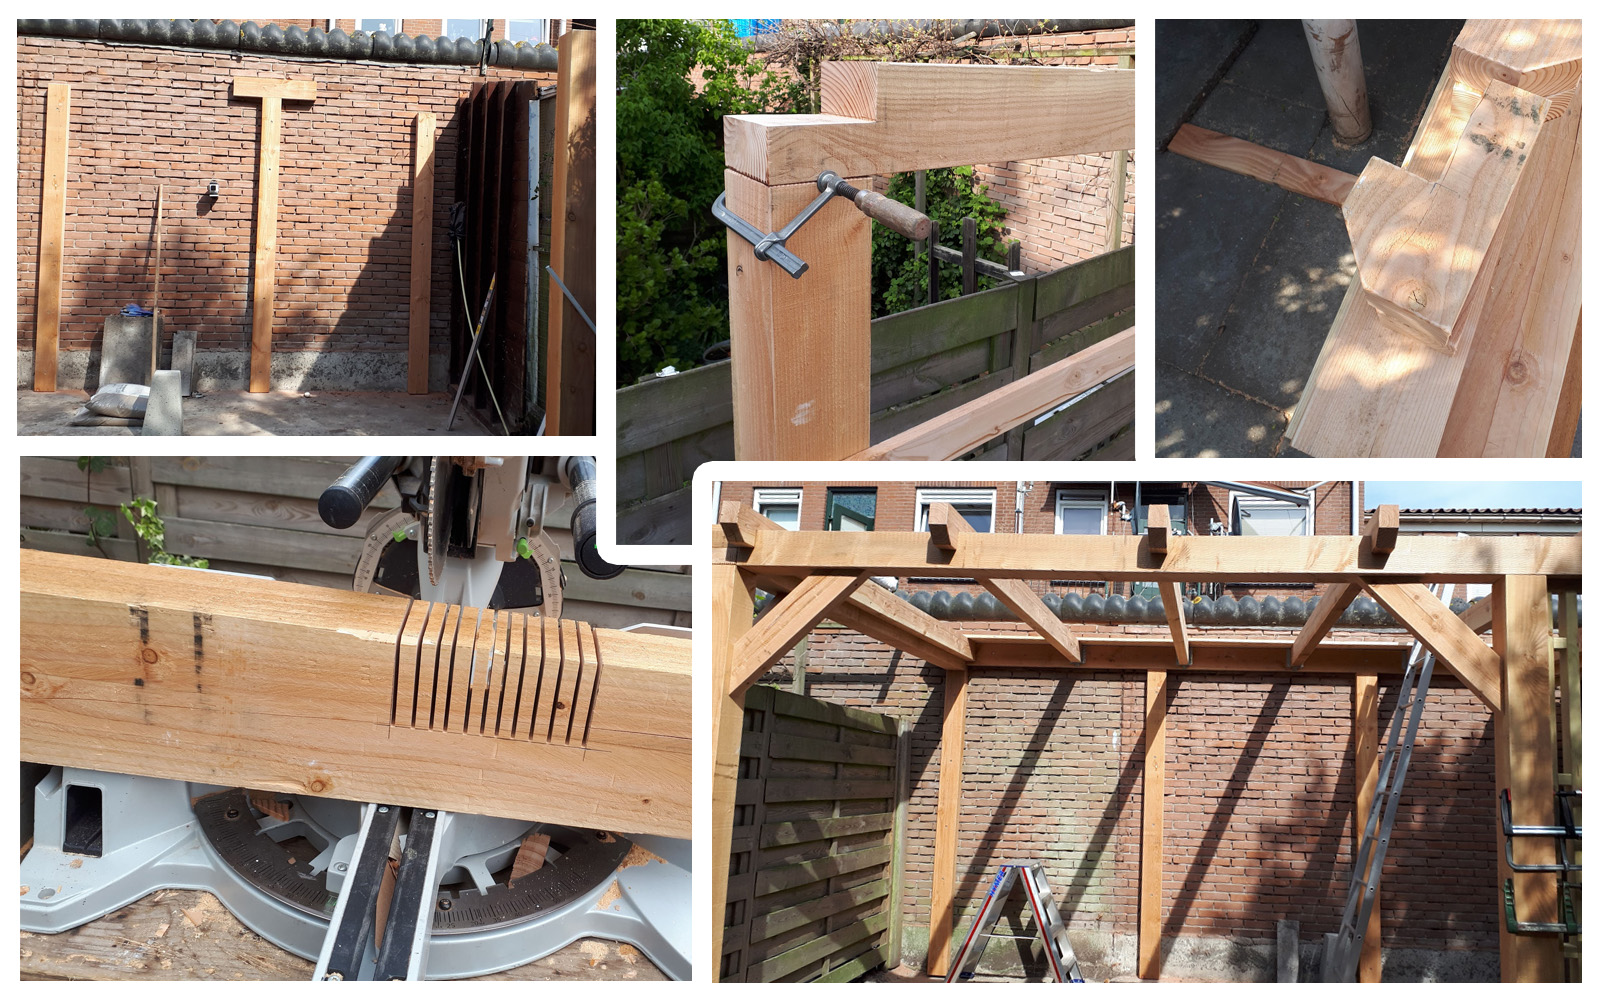 TimBer Project 3